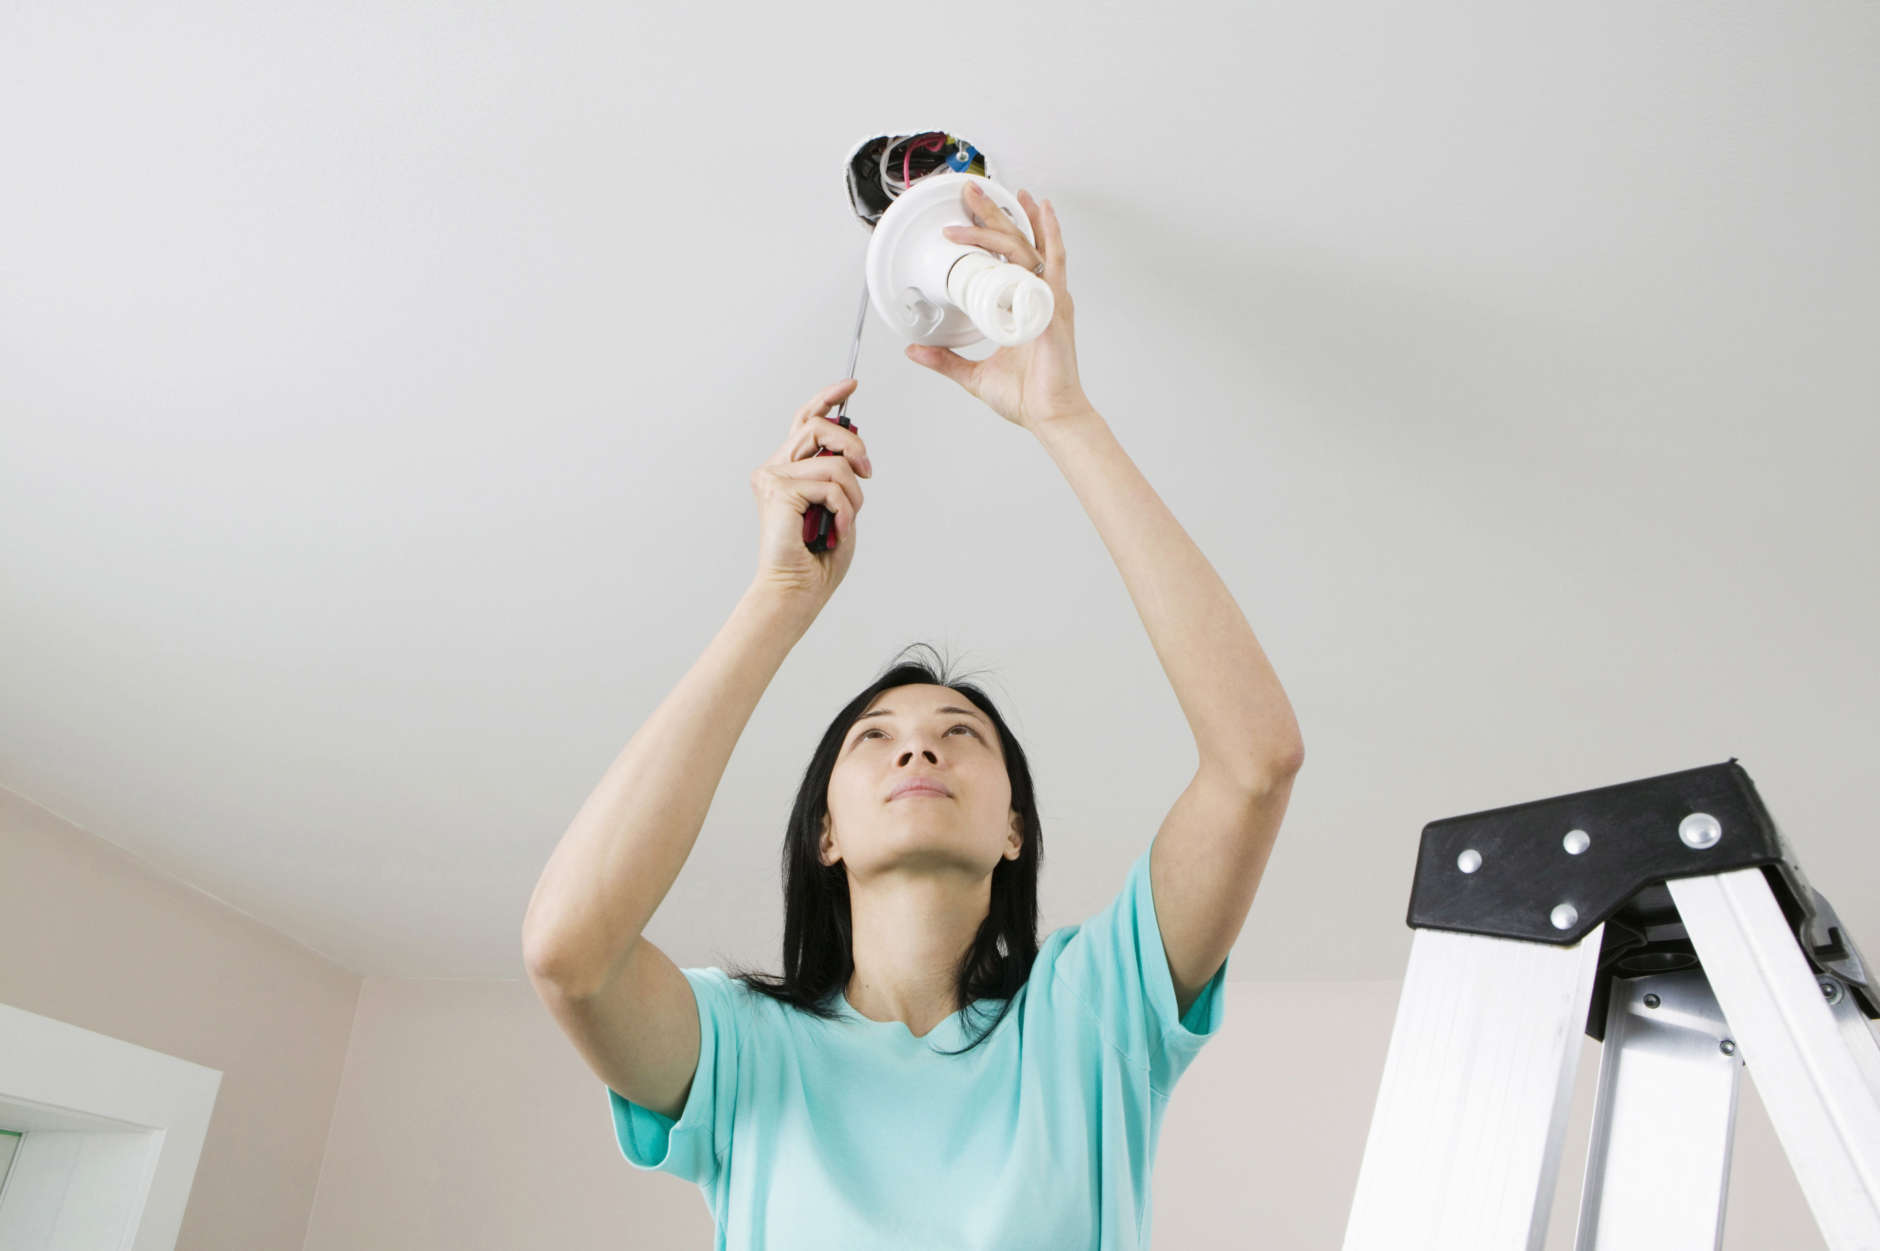 Low angle view of a young woman fixing a light fixture